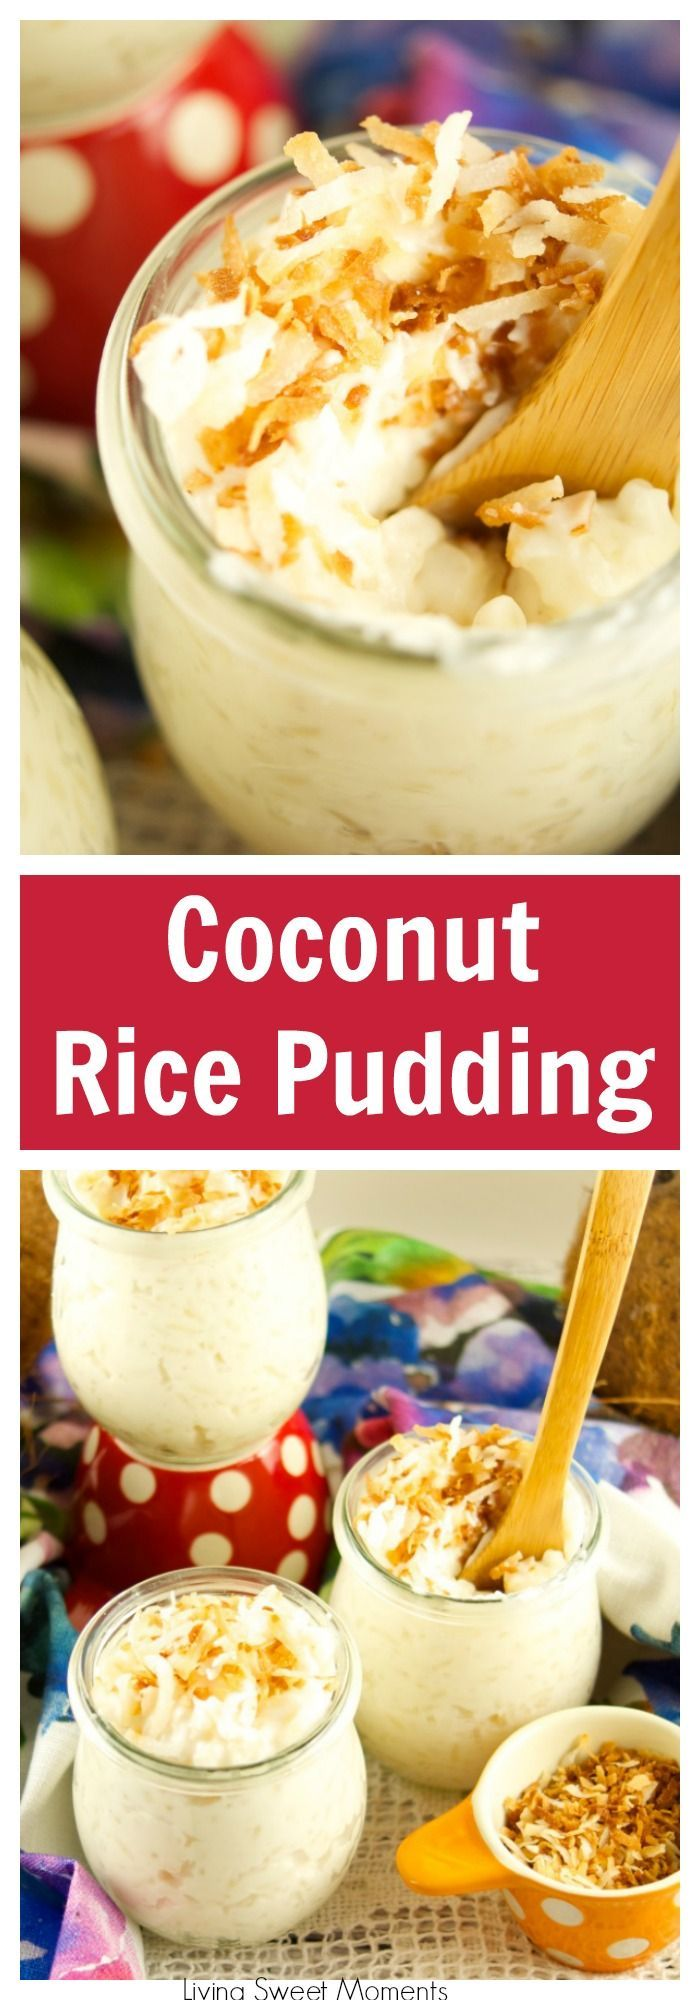 This creamy Coconut Rice Pudding is delicious, sweet and the perfect comfort dessert that will transport you to the islands. Easy to make and Gluten Free. More easy dessert recipes at livingsweetmoments.com